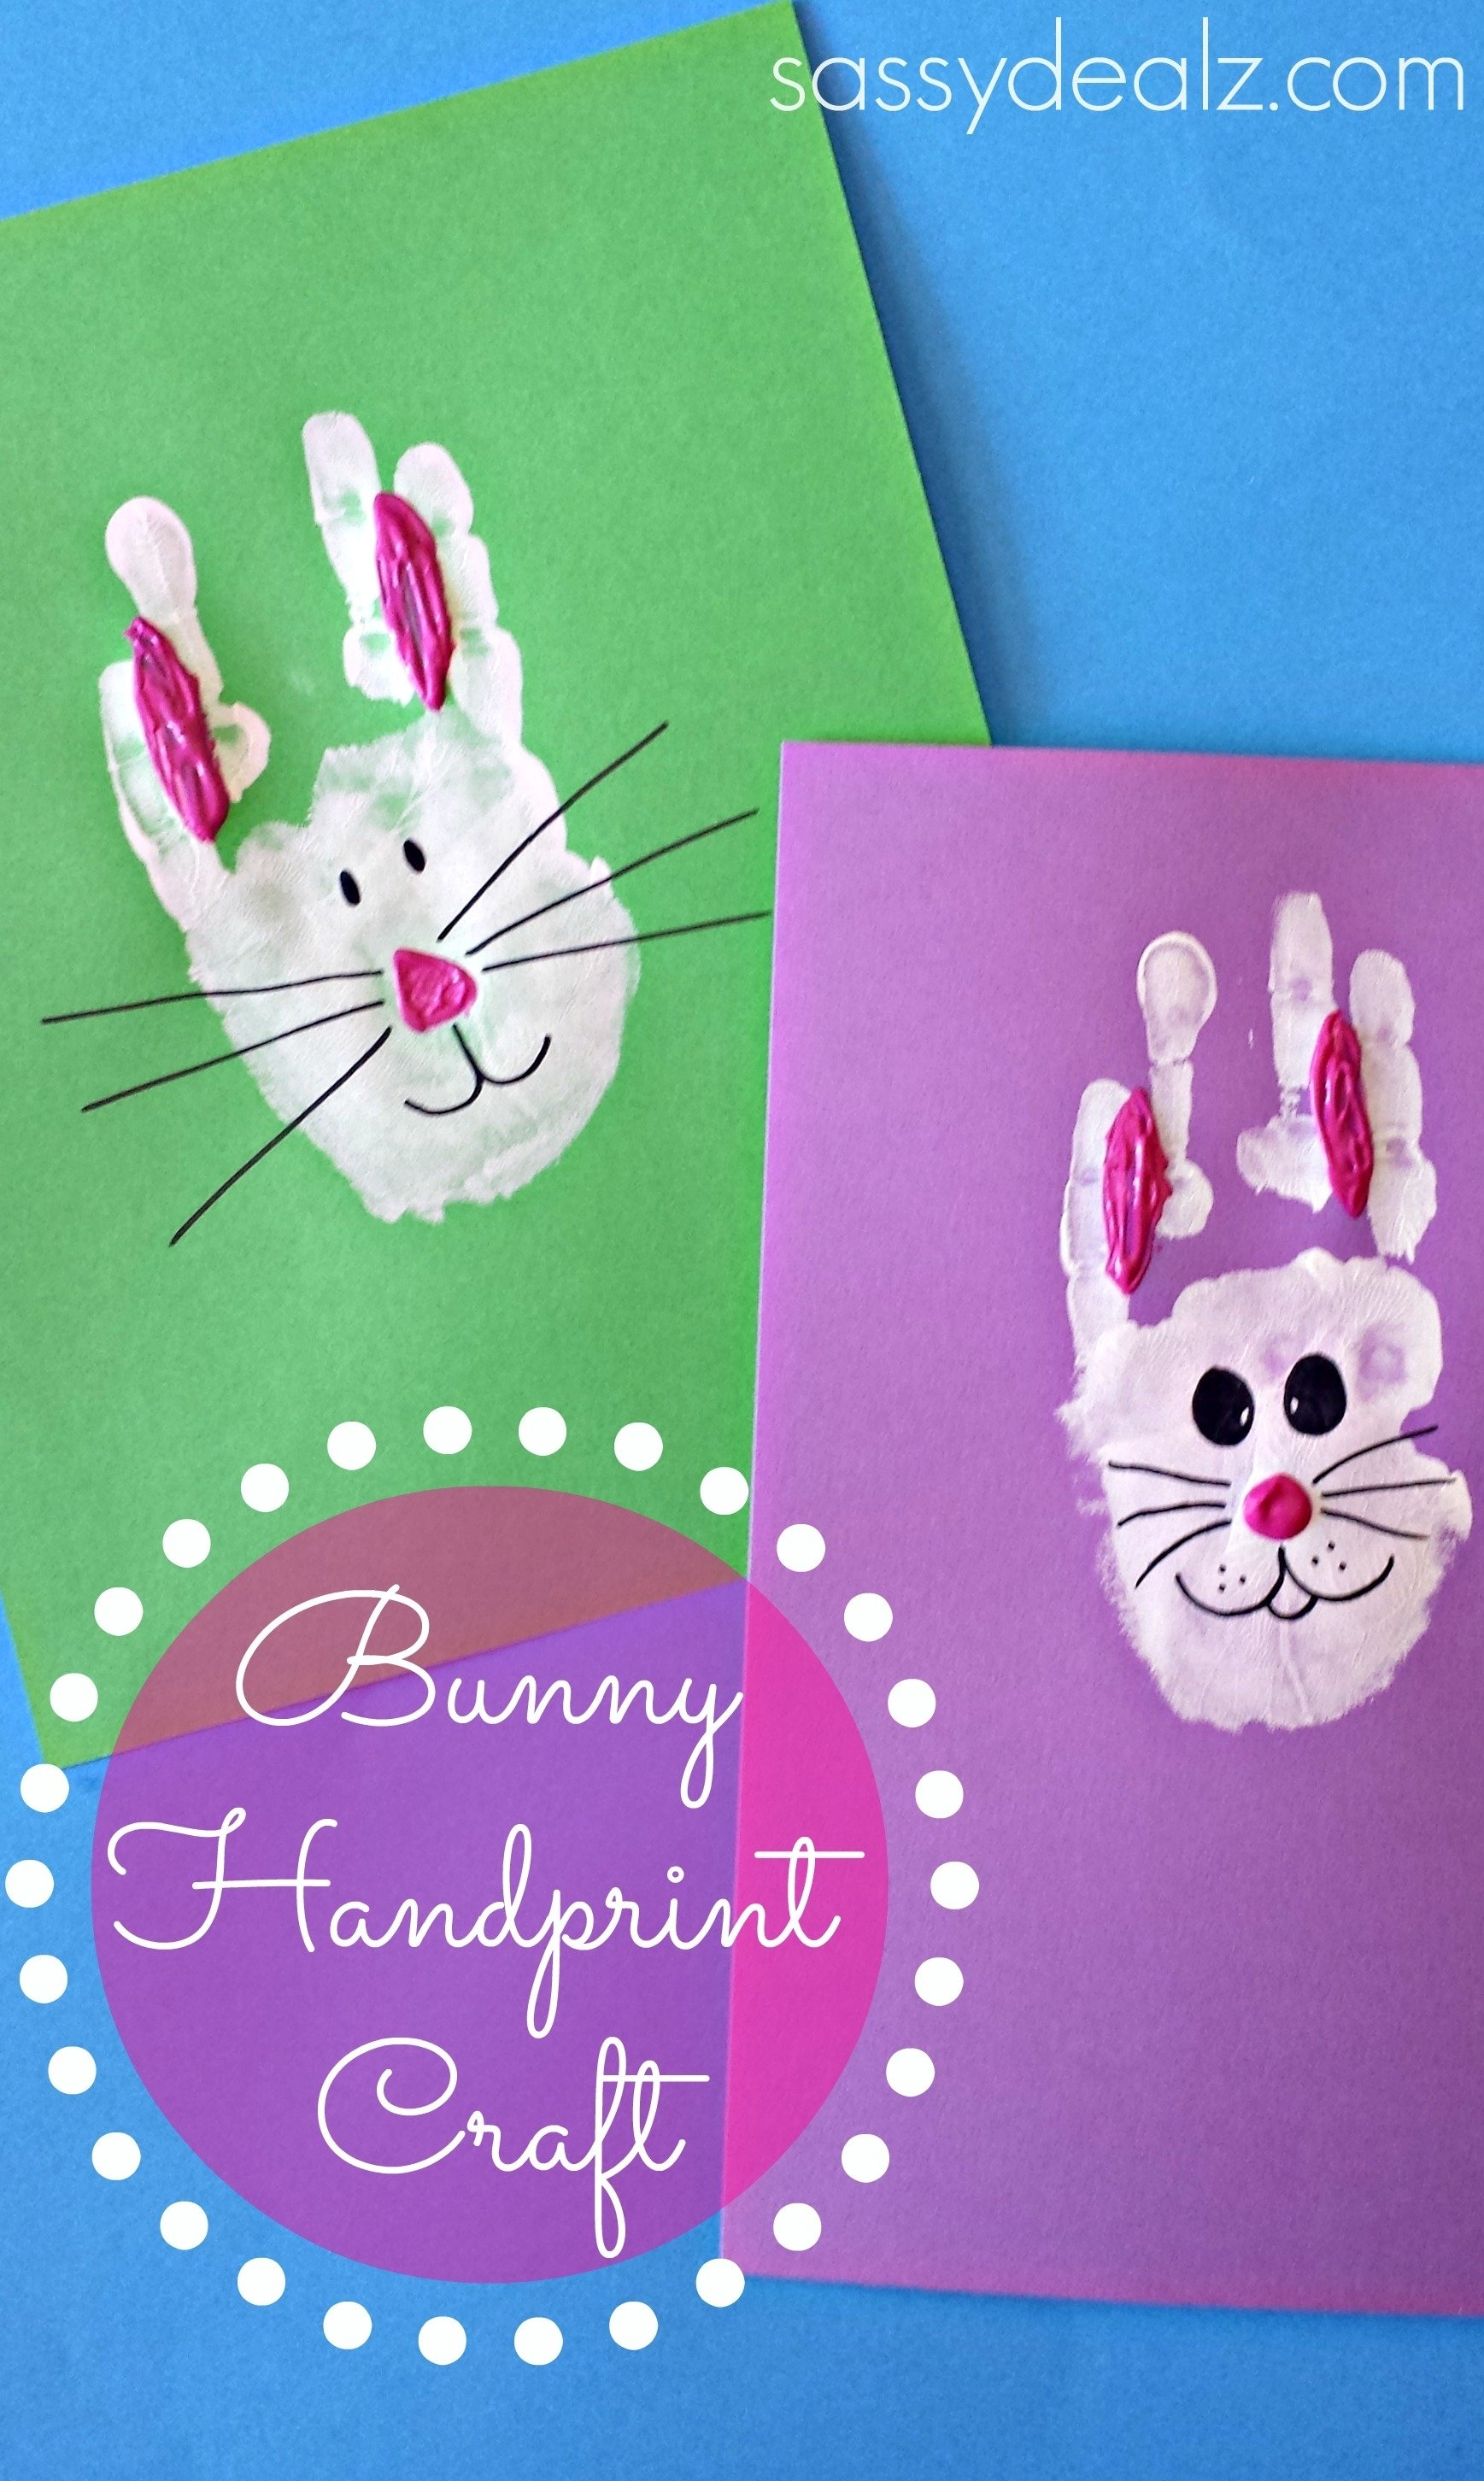 10 Unique Easter Craft Ideas For Preschoolers bunny rabbit handprint craft for kids easter idea crafty morning 2020